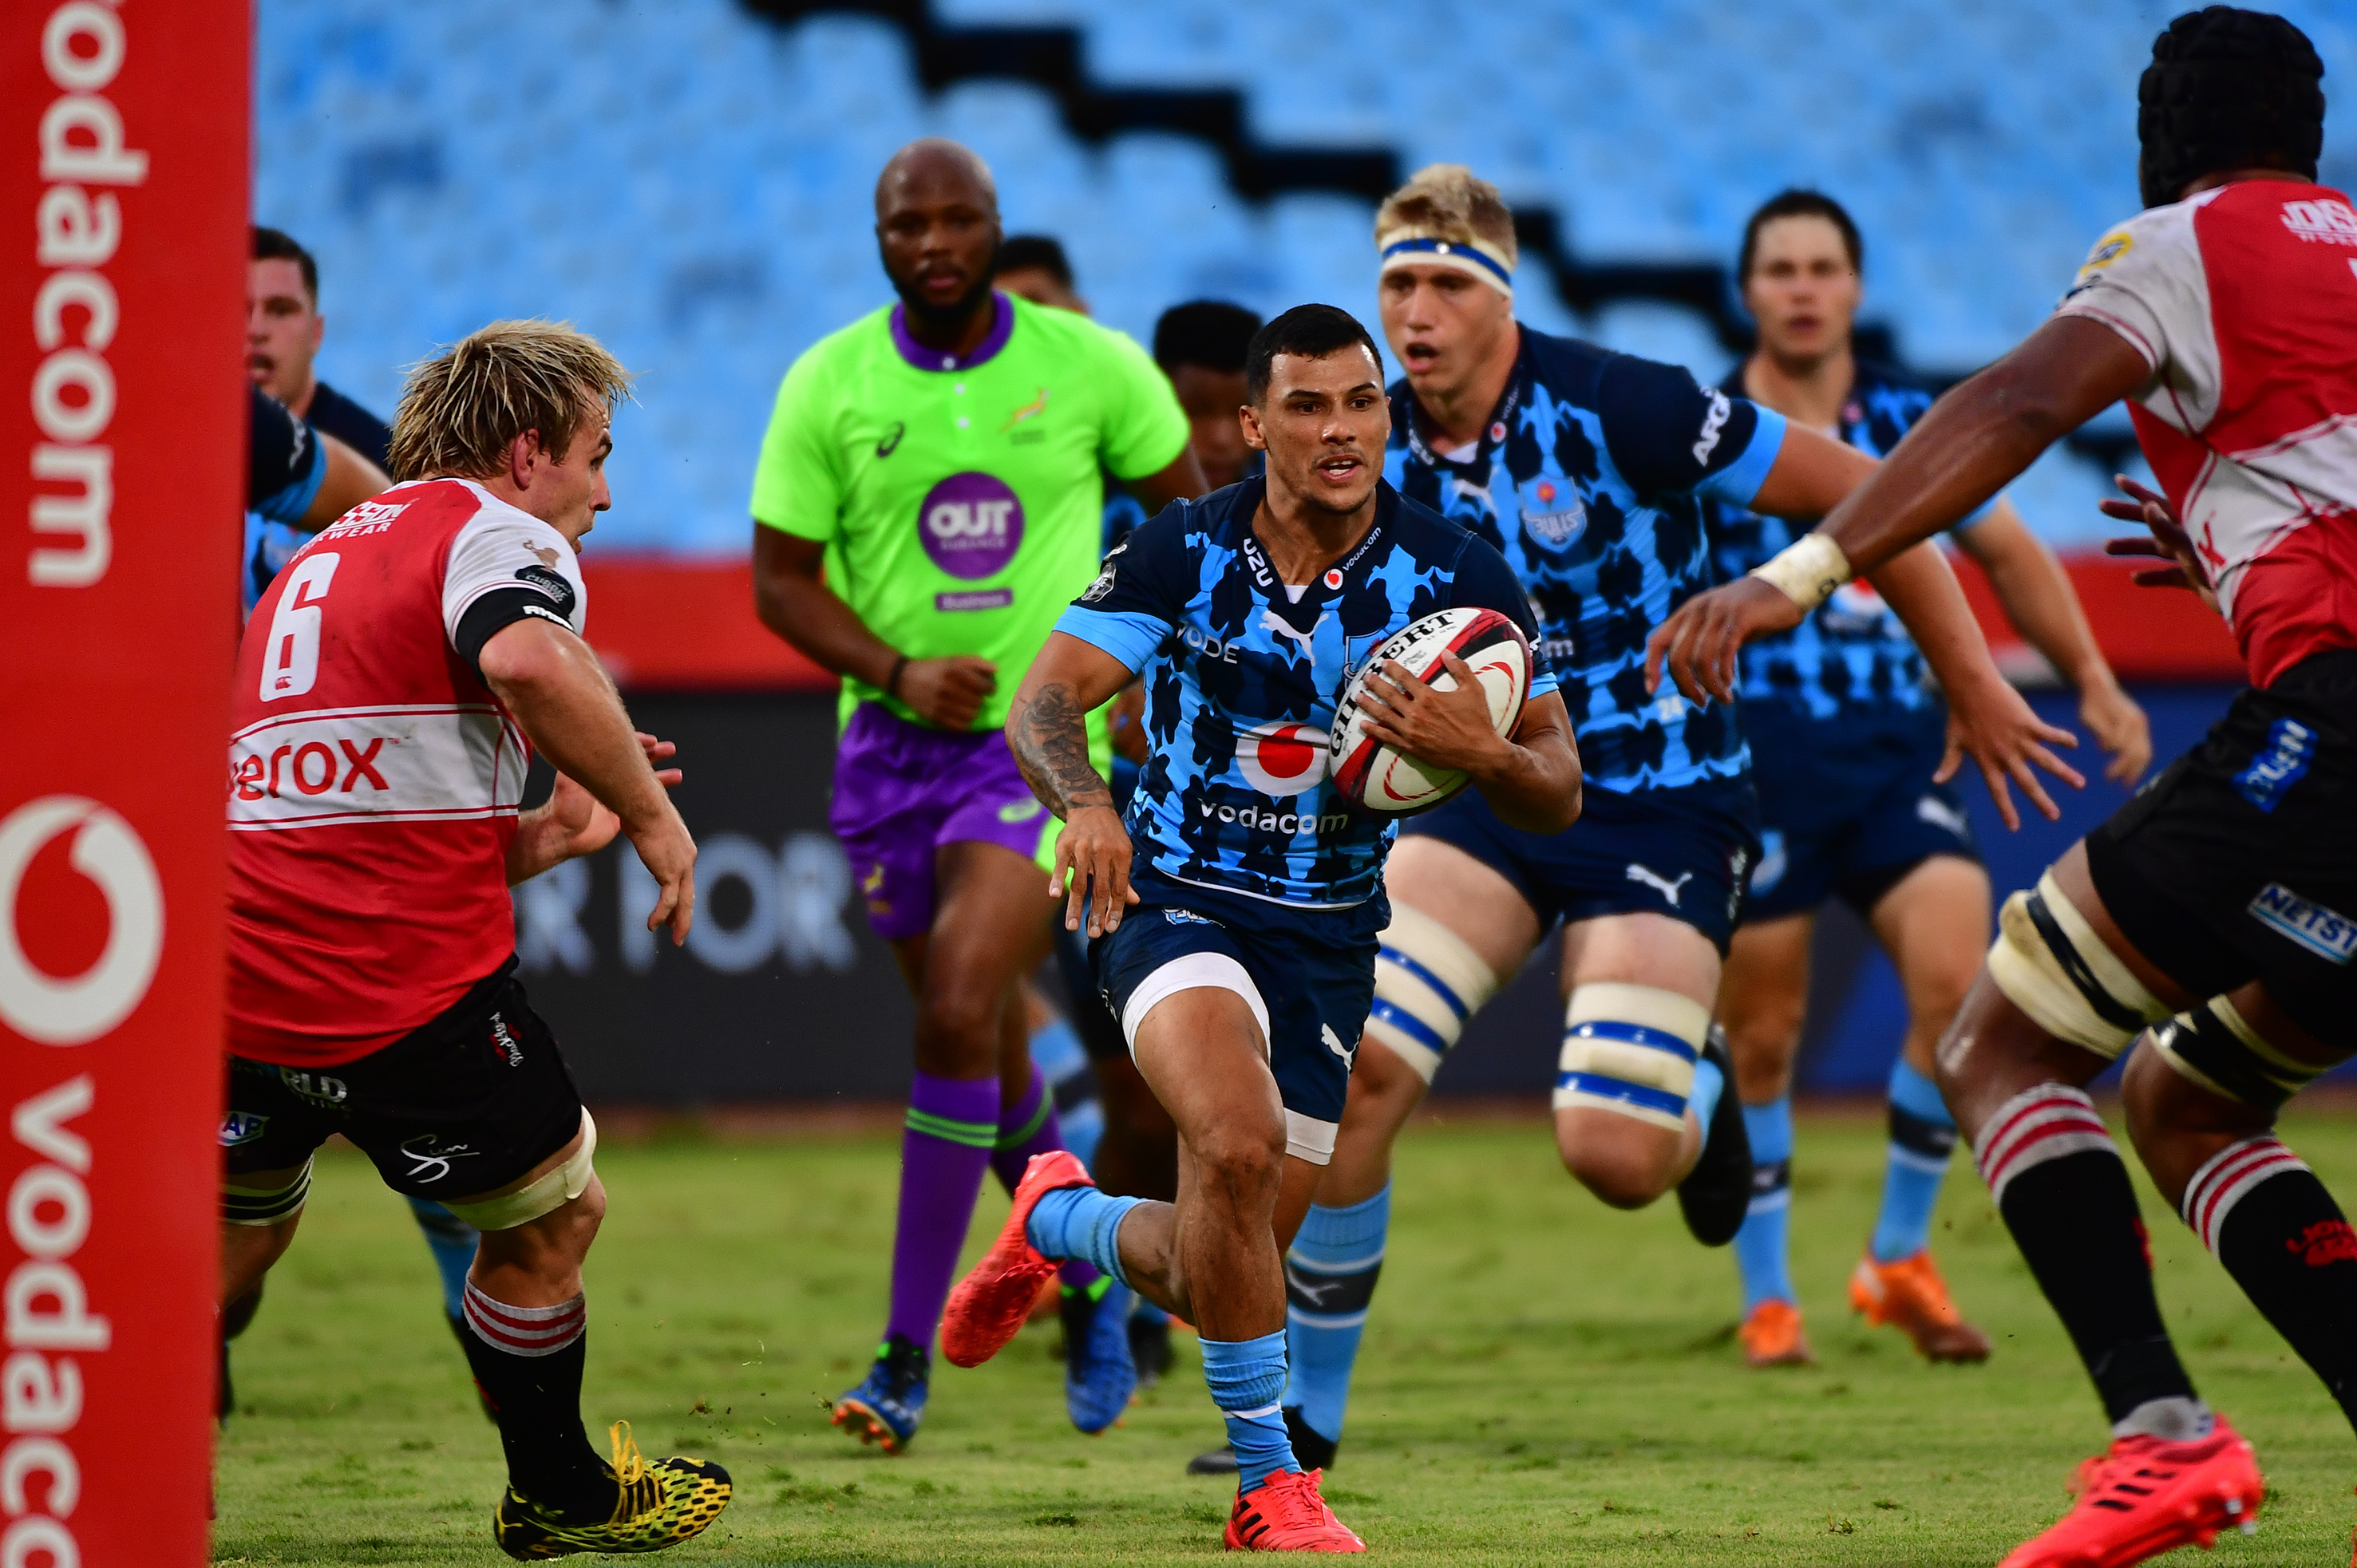 Carling Currie Cup semi-final match preview – Vodacom Bulls v Xerox Lions